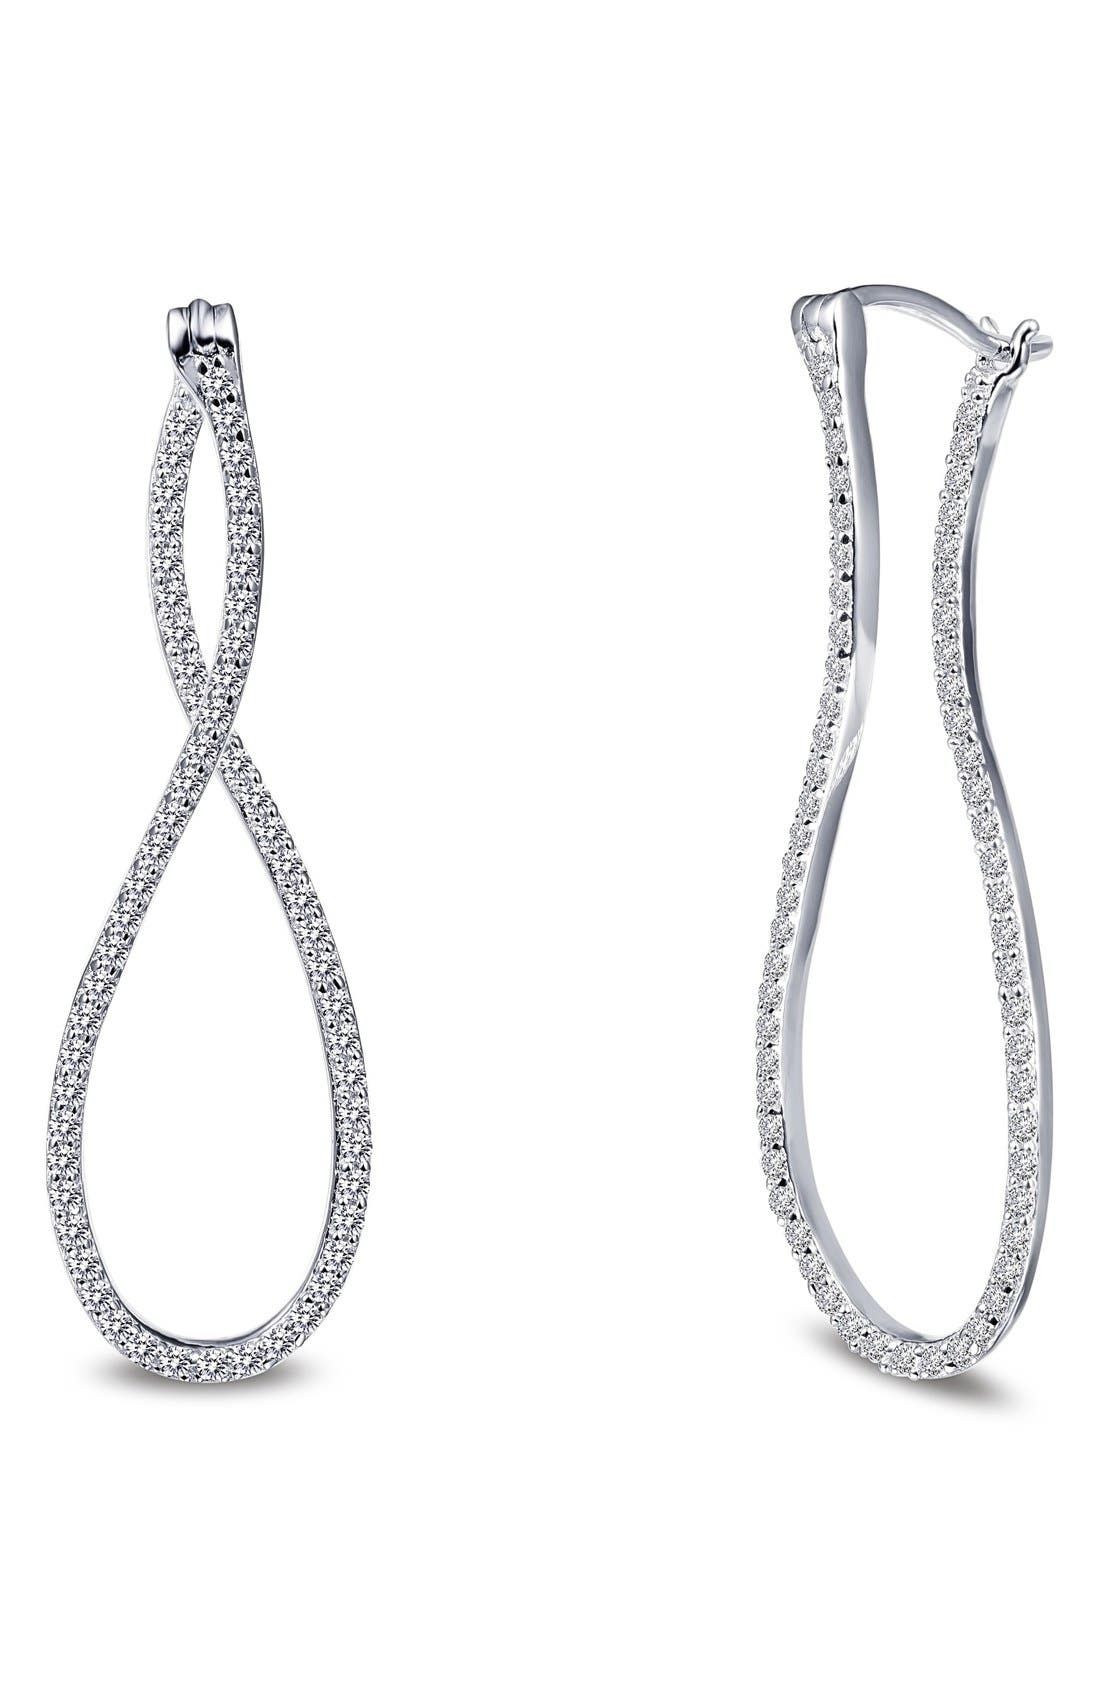 Lafonn 'Lassaire' Infinity Drop Earrings